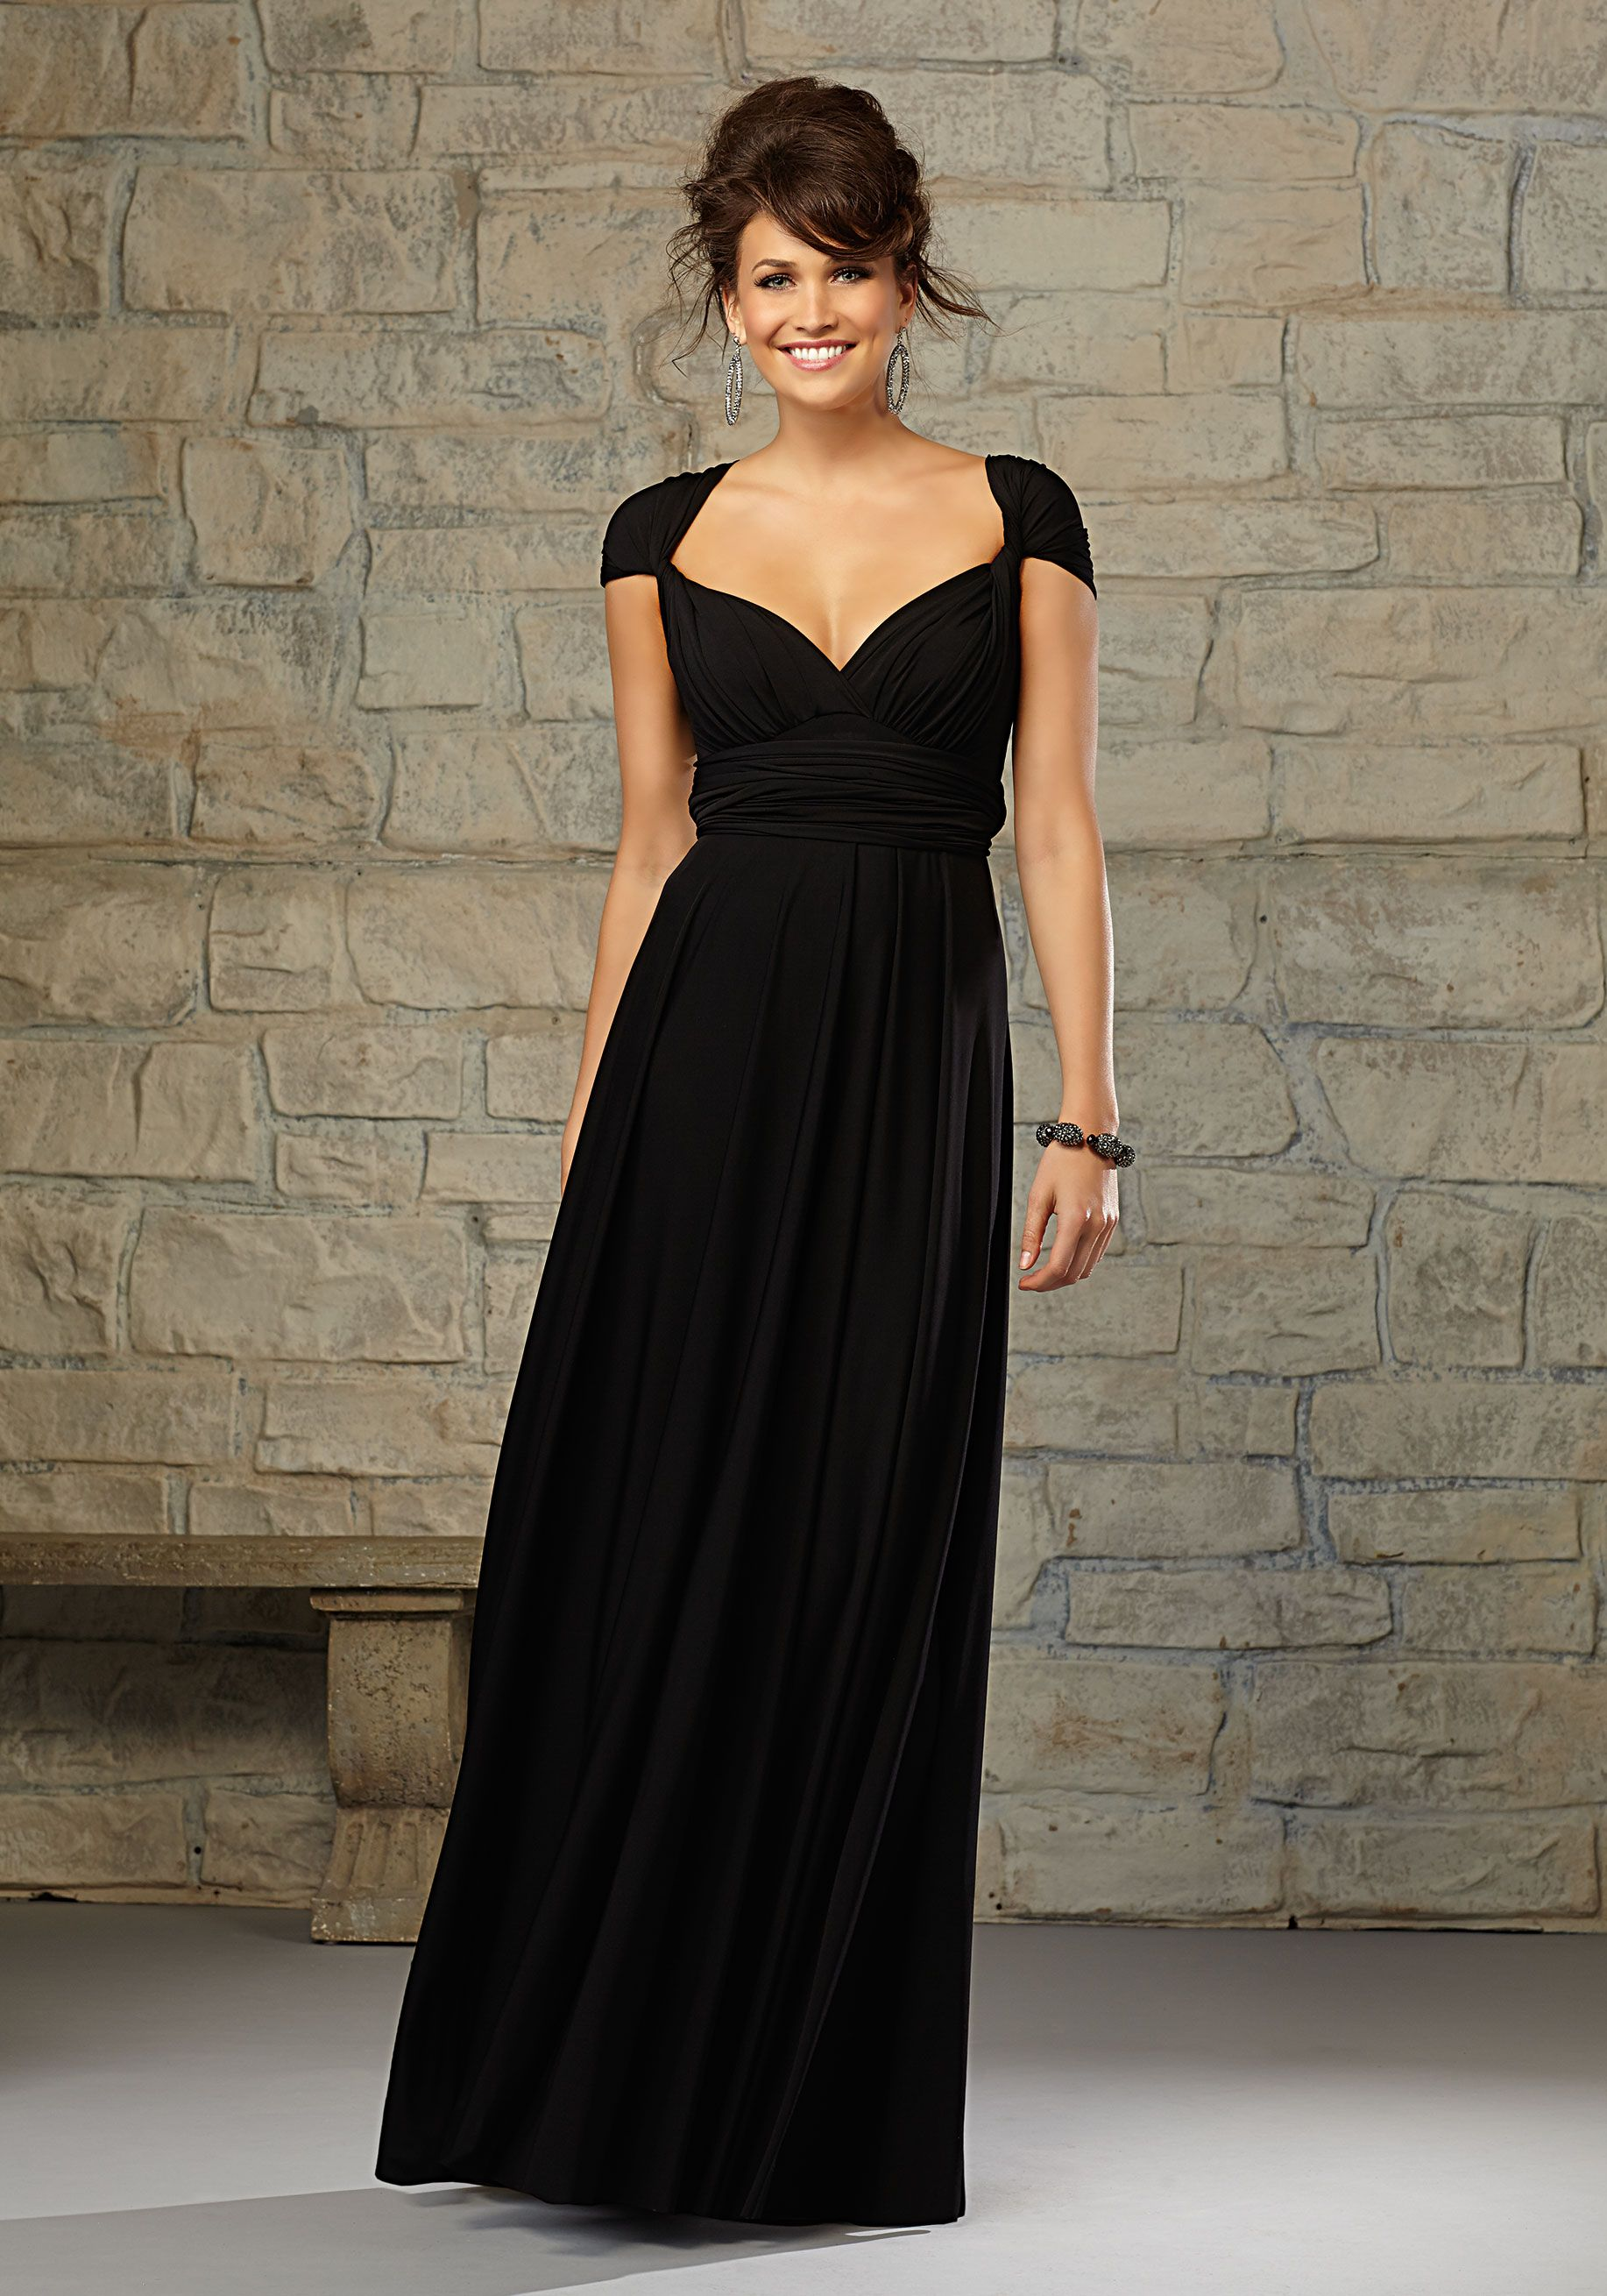 Jersey bridesmaid dress with adaptable straps designed by madeline jersey bridesmaid dress with adaptable straps designed by madeline gardner shown in black ombrellifo Choice Image